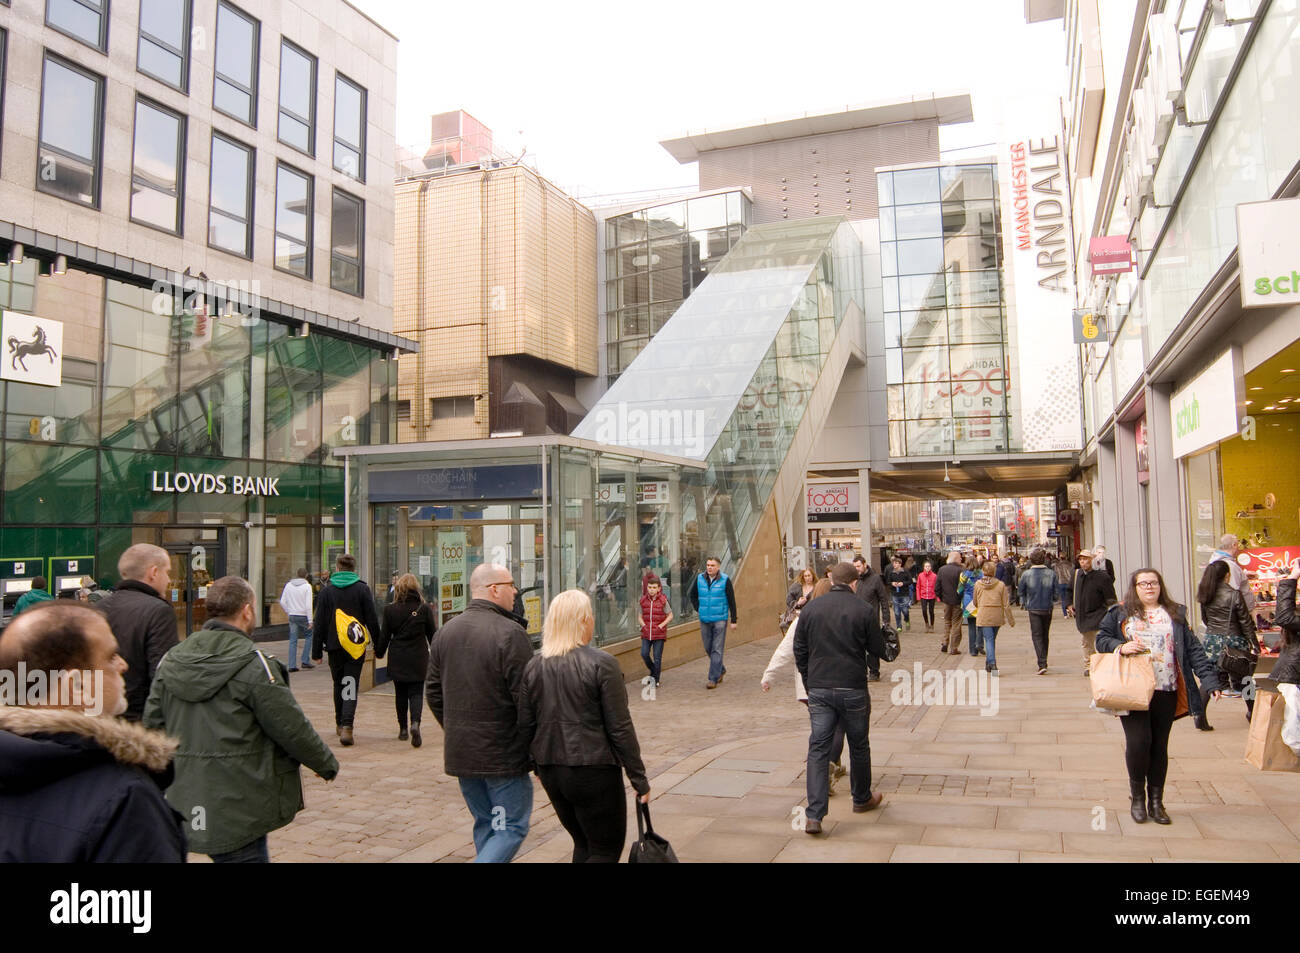 uk highstreet highstreets high street streets manchester arndale center centre busy people shopper shoppers shopping - Stock Image